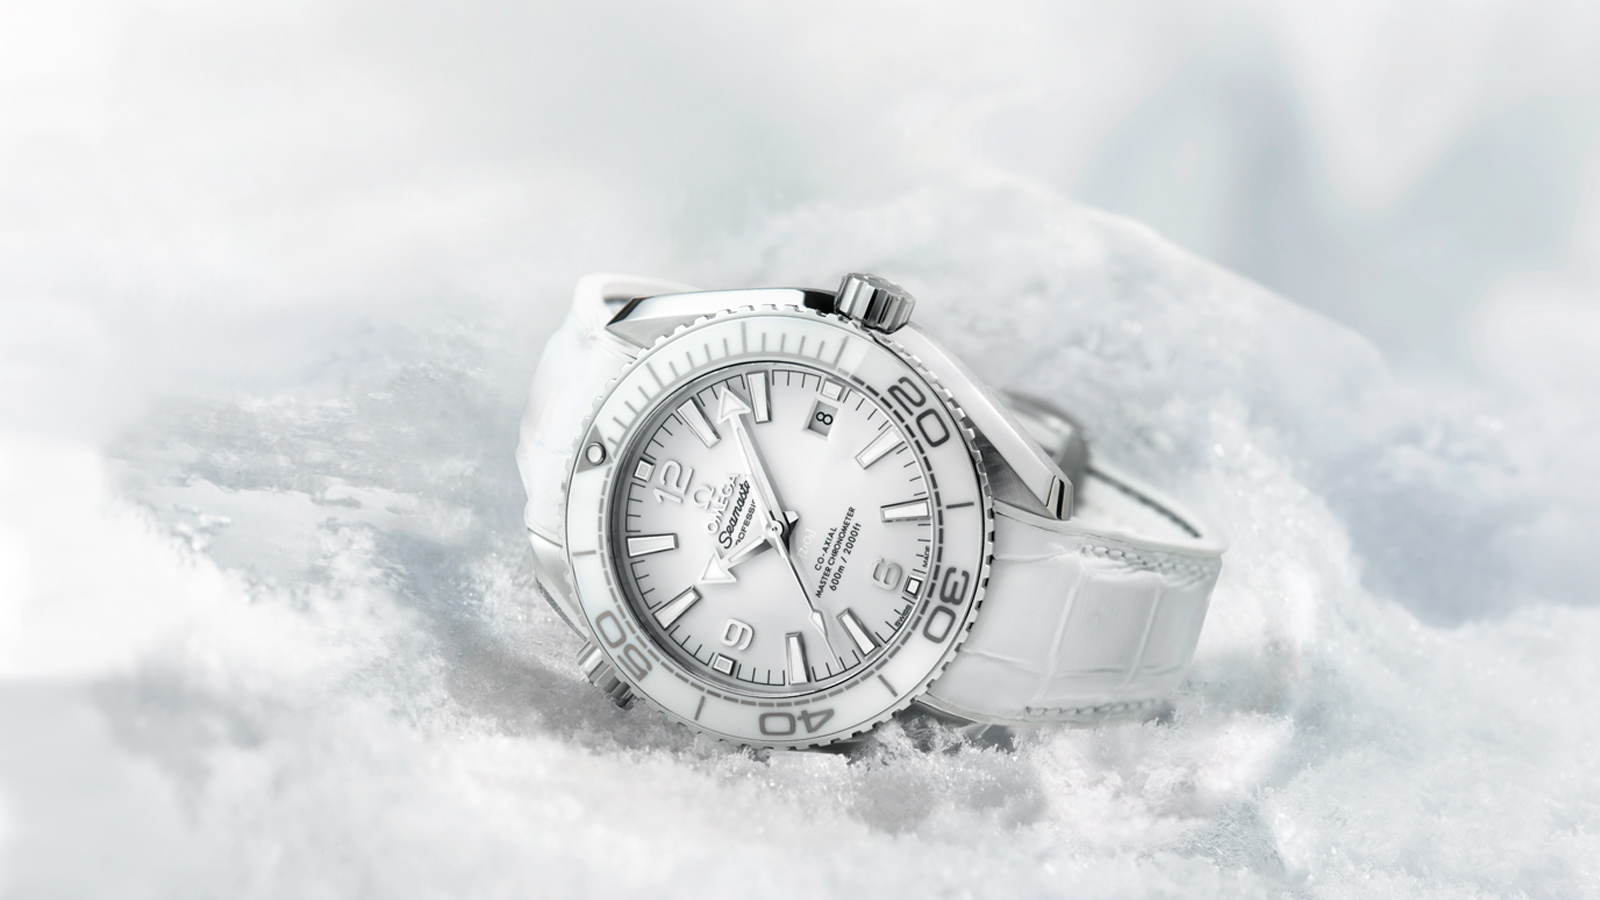 Watch Omega Seamaster PLANET OCEAN 600 white sunk in the snow